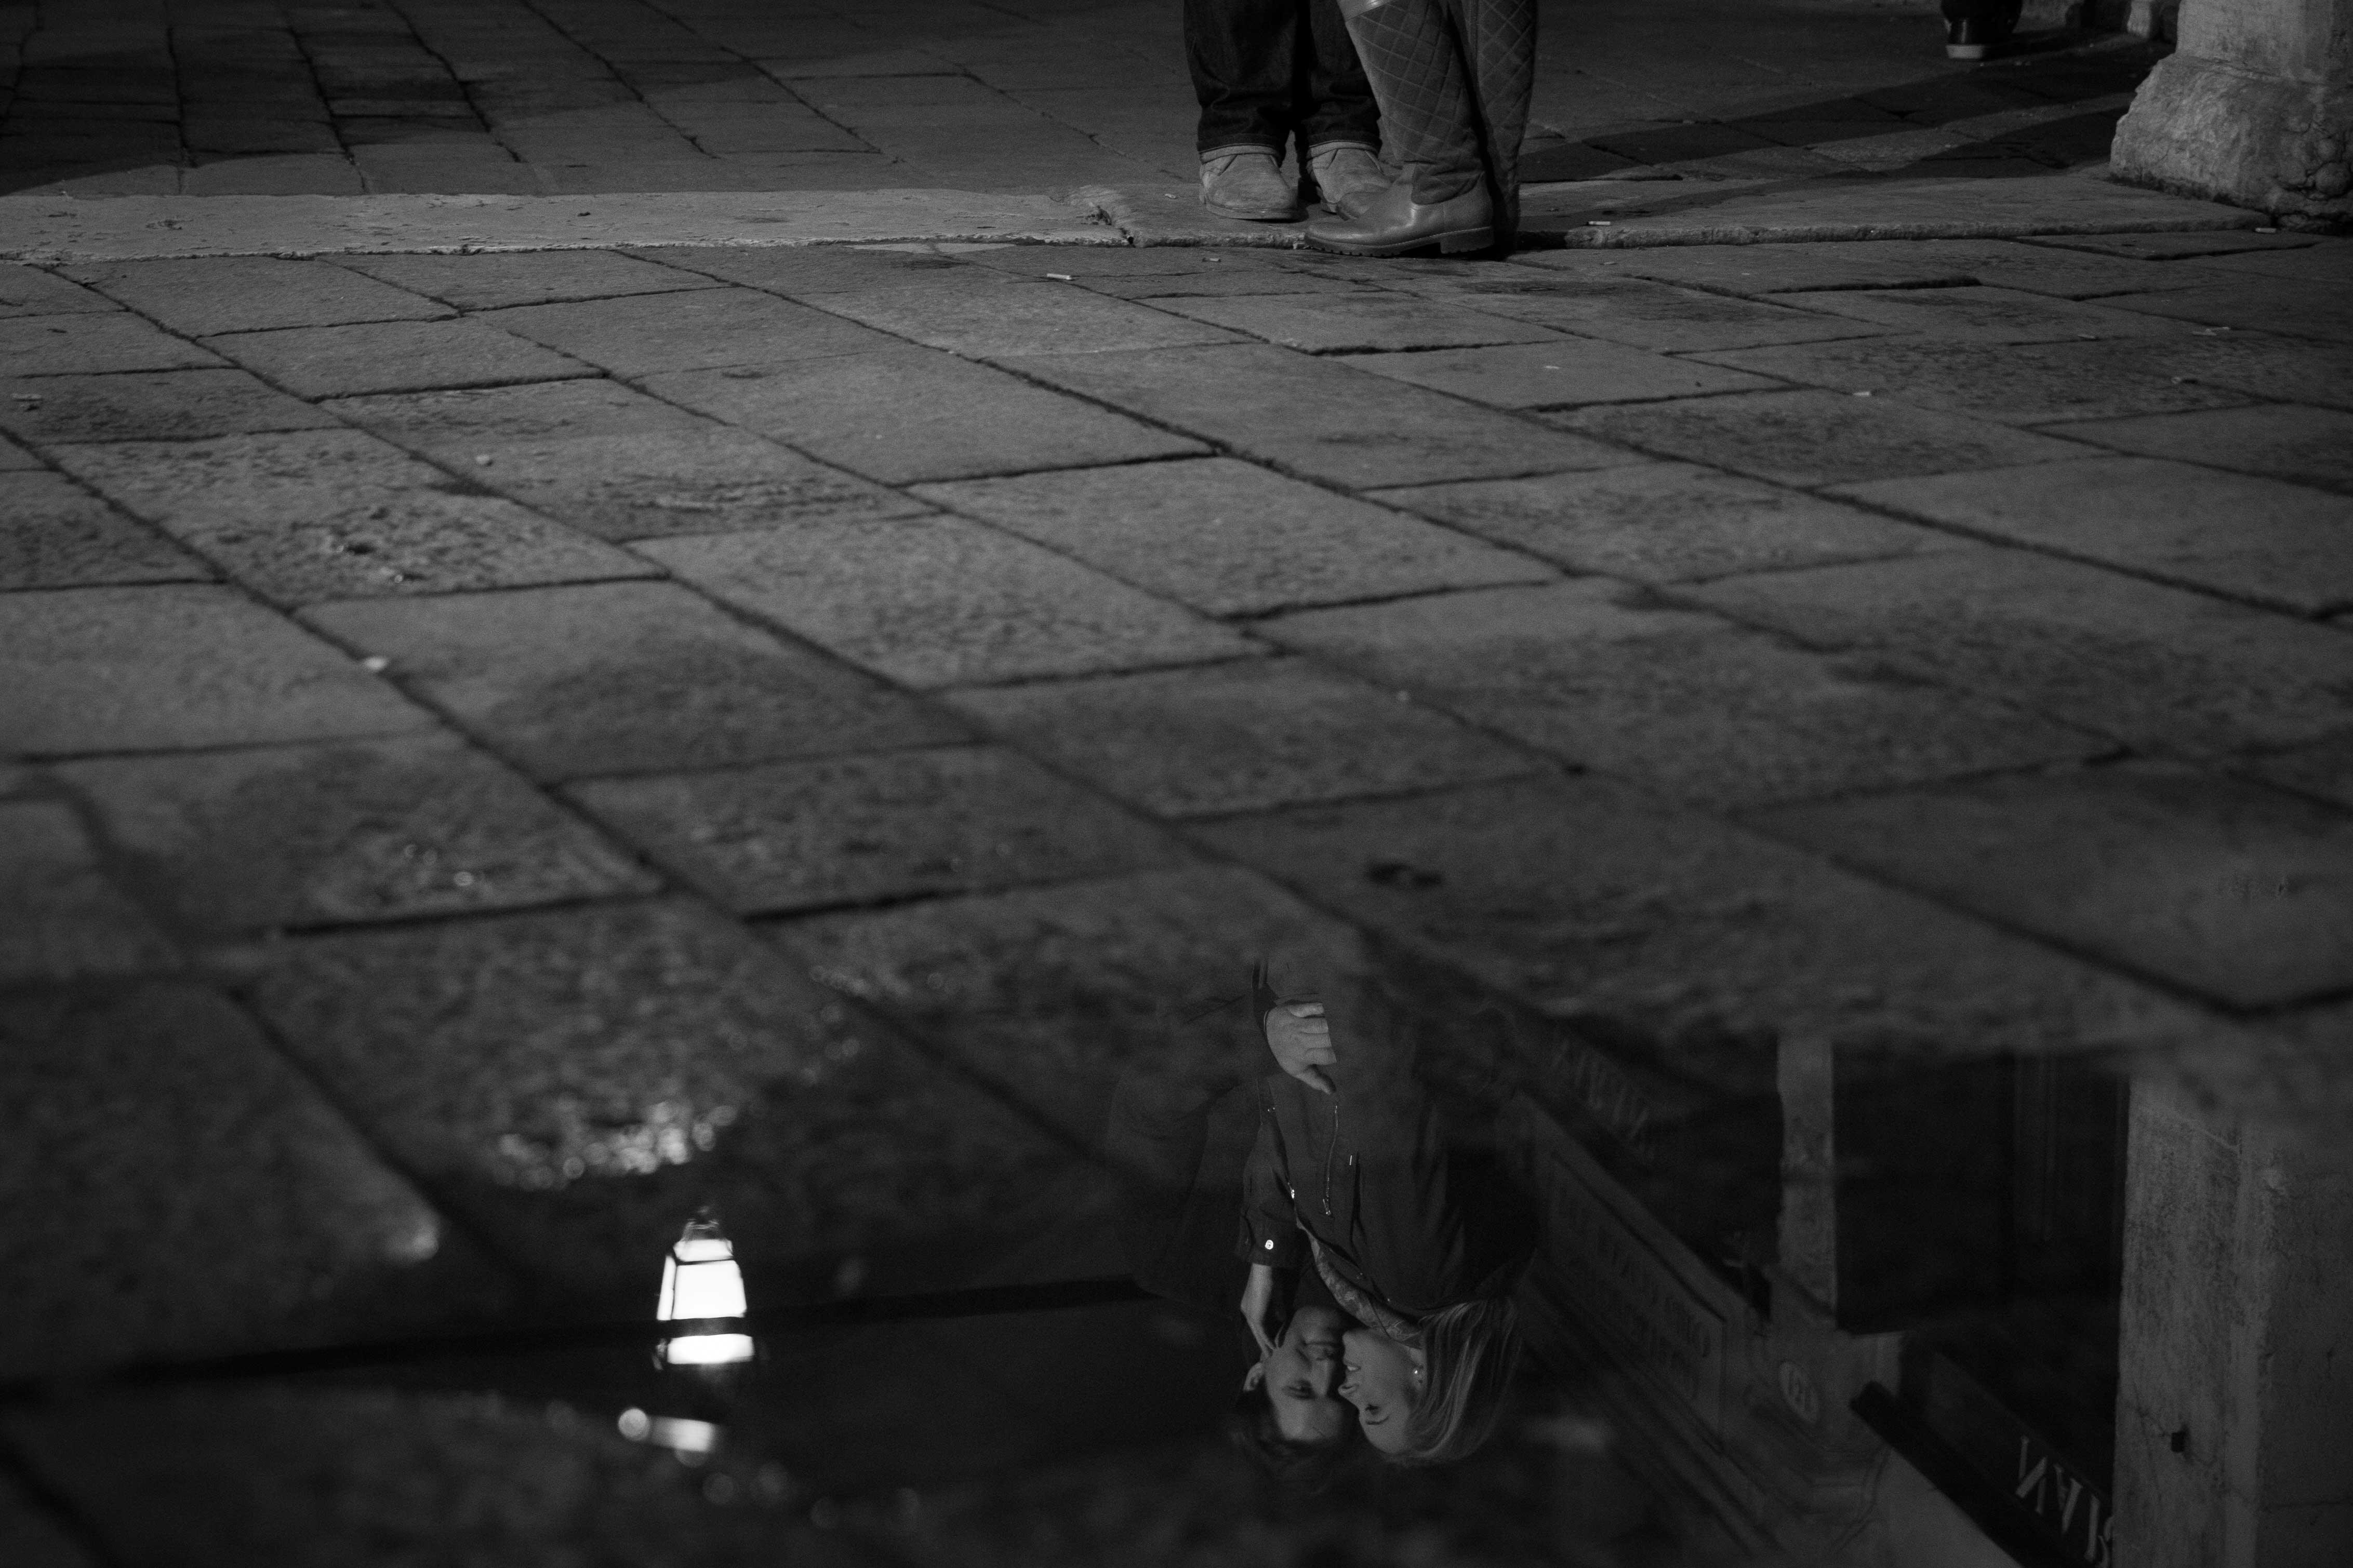 Black and white engagement photo of reflection in puddle